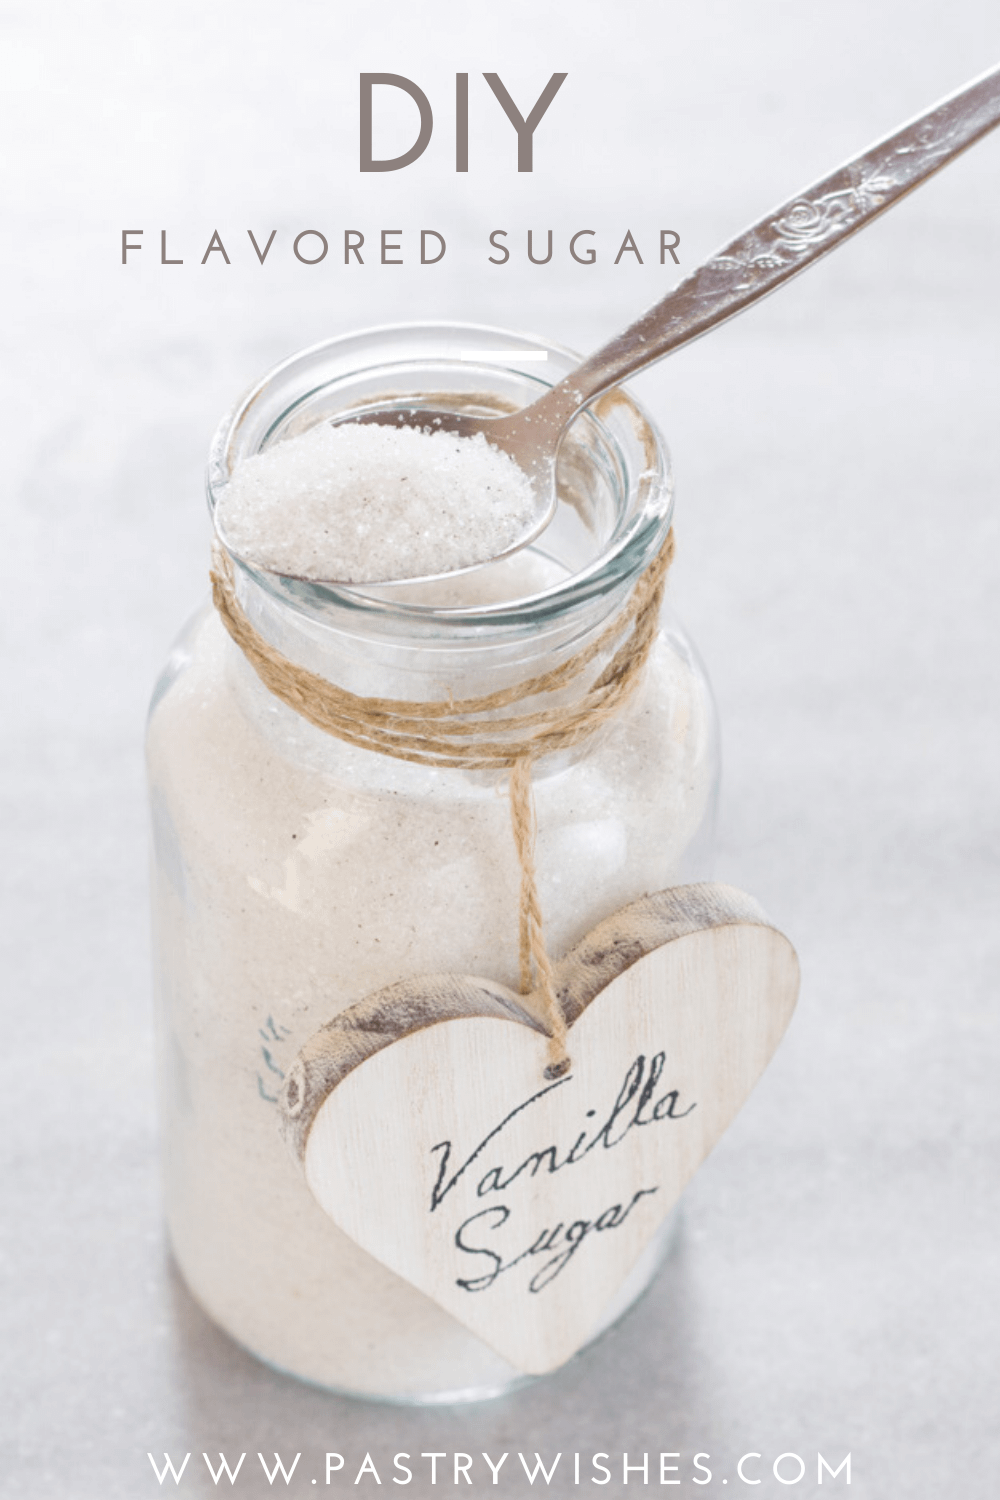 DIY flavored sugar